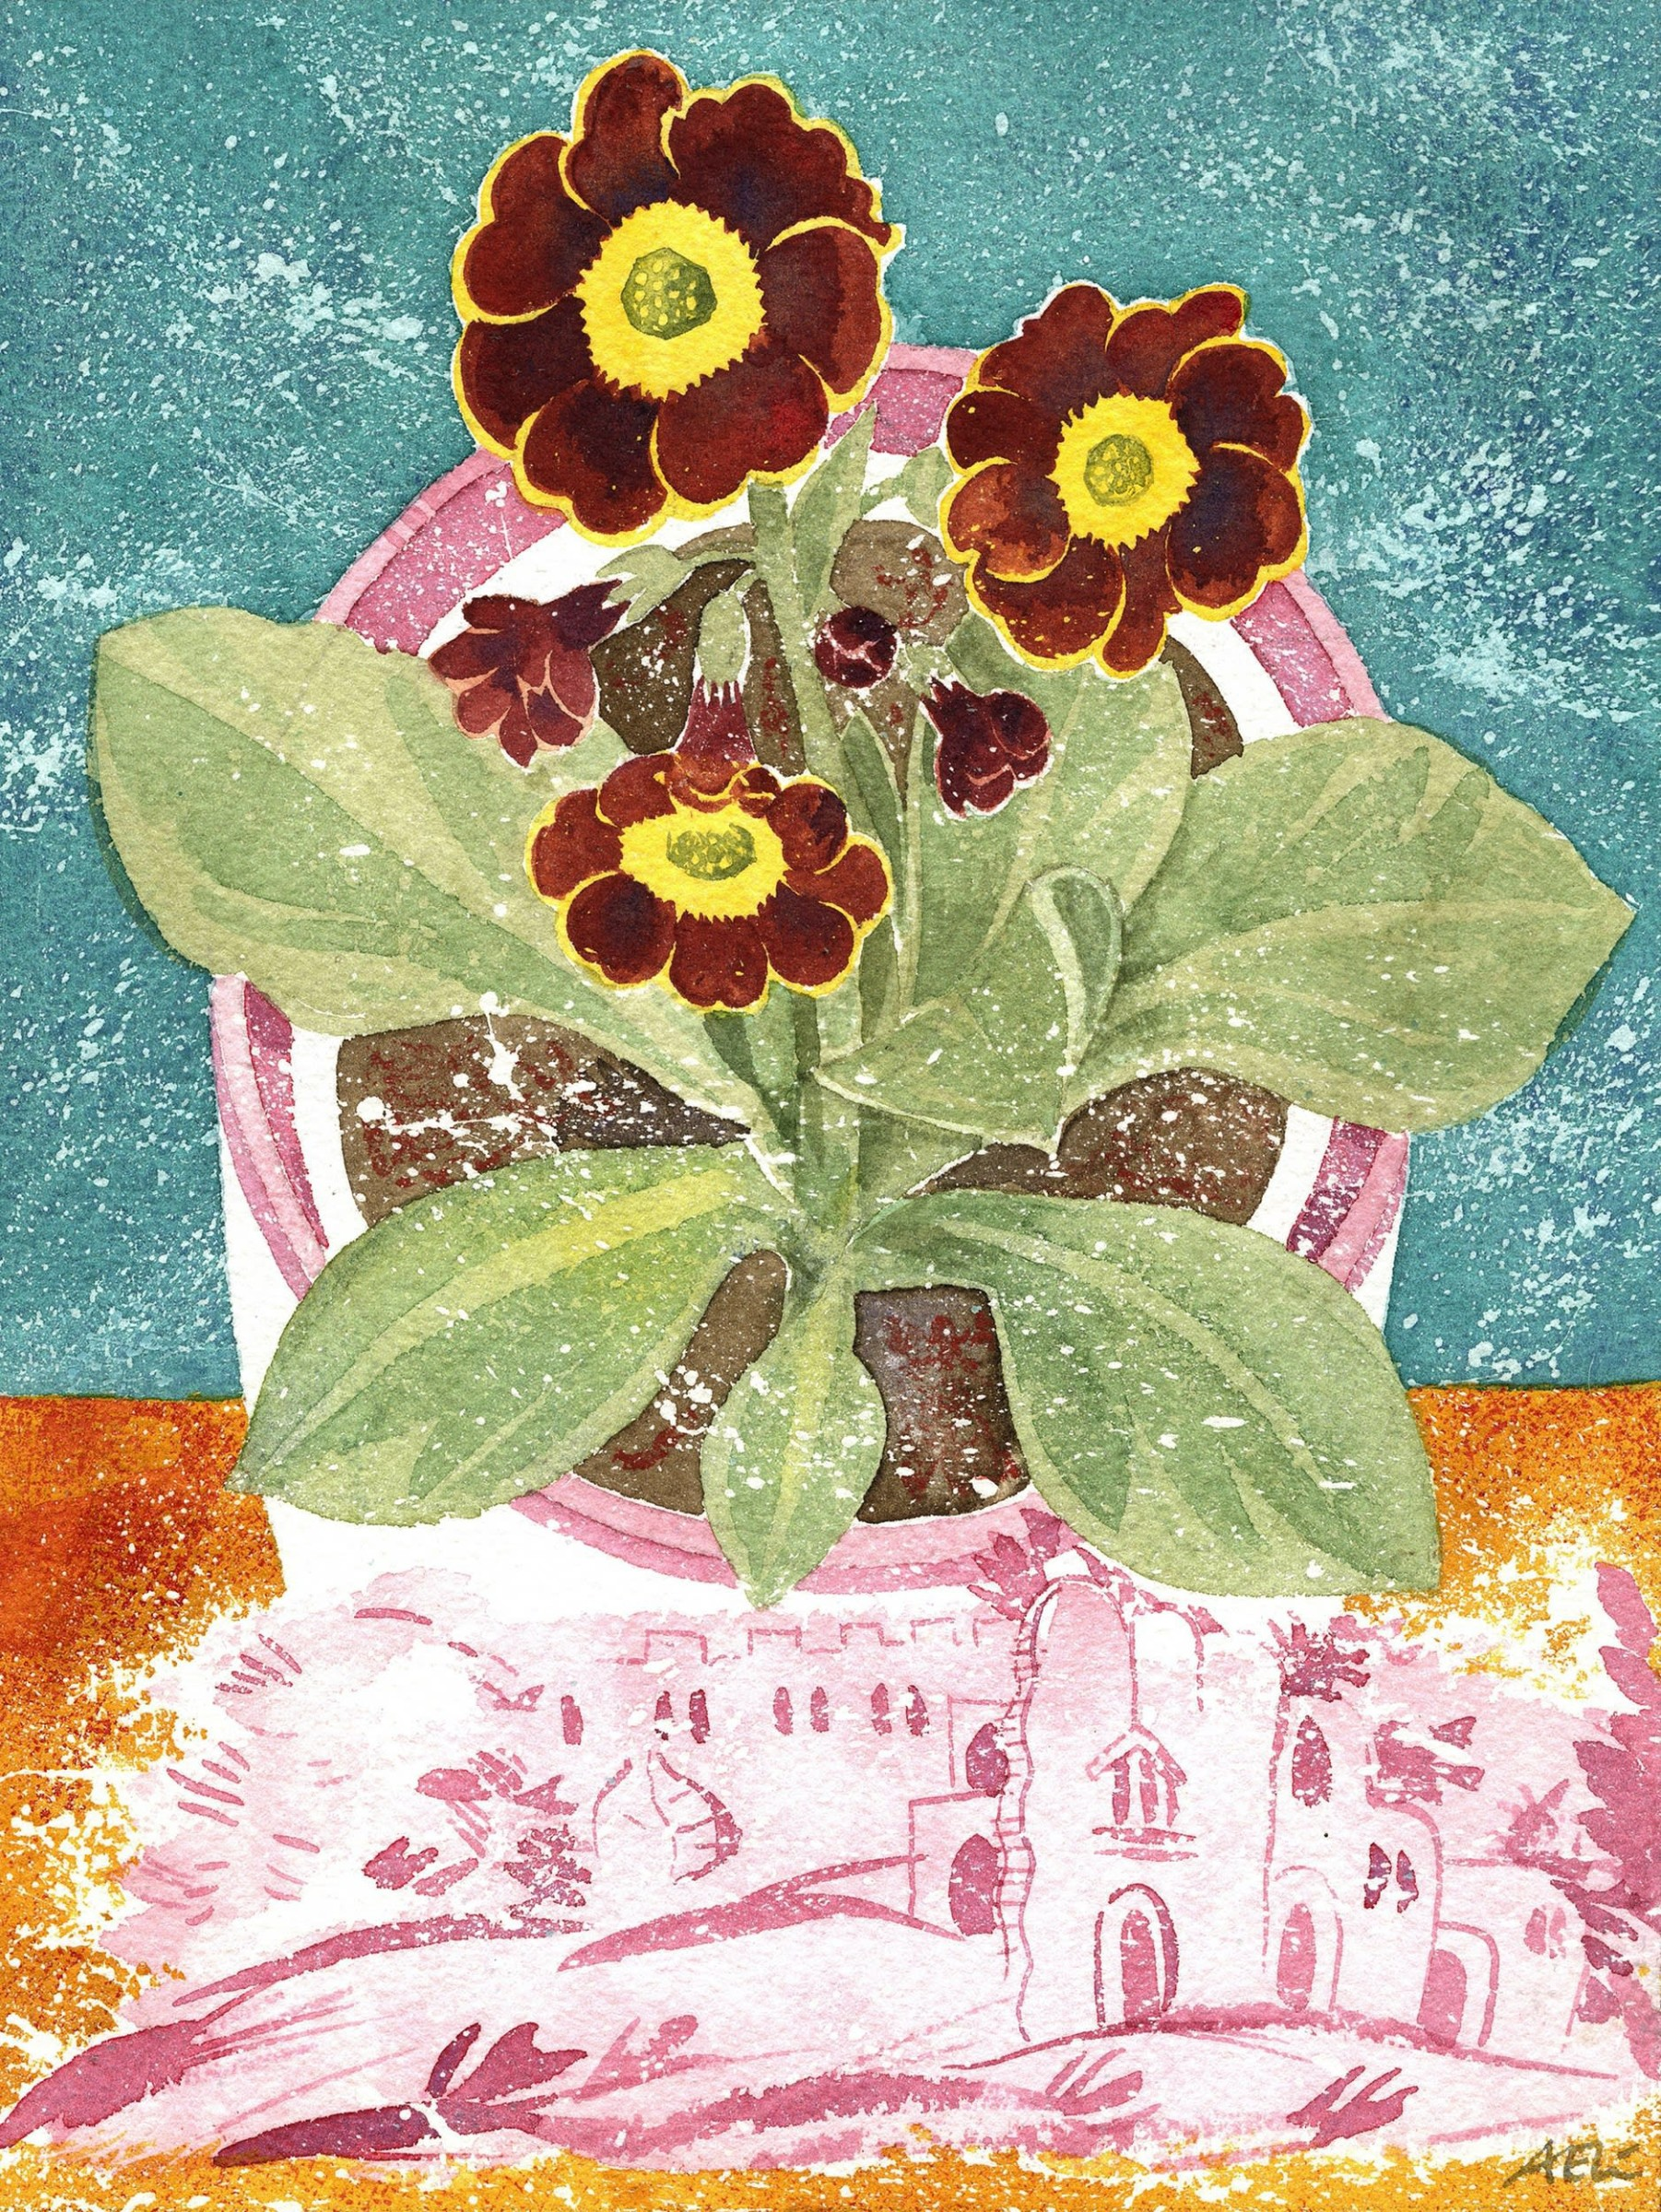 """<span class=""""link fancybox-details-link""""><a href=""""/artists/129-angie-lewin/works/12763-angie-lewin-auricula-autumn-fire-and-lustreware-landscape/"""">View Detail Page</a></span><div class=""""artist""""><span class=""""artist""""><strong>Angie Lewin</strong></span></div><div class=""""title""""><em>Auricula 'Autumn Fire' and Lustreware Landscape</em></div><div class=""""medium"""">watercolour</div><div class=""""dimensions"""">Frame: 37 x 31cm<br /> Artwork: 20 x 15cm</div><div class=""""price"""">£620.00</div>"""